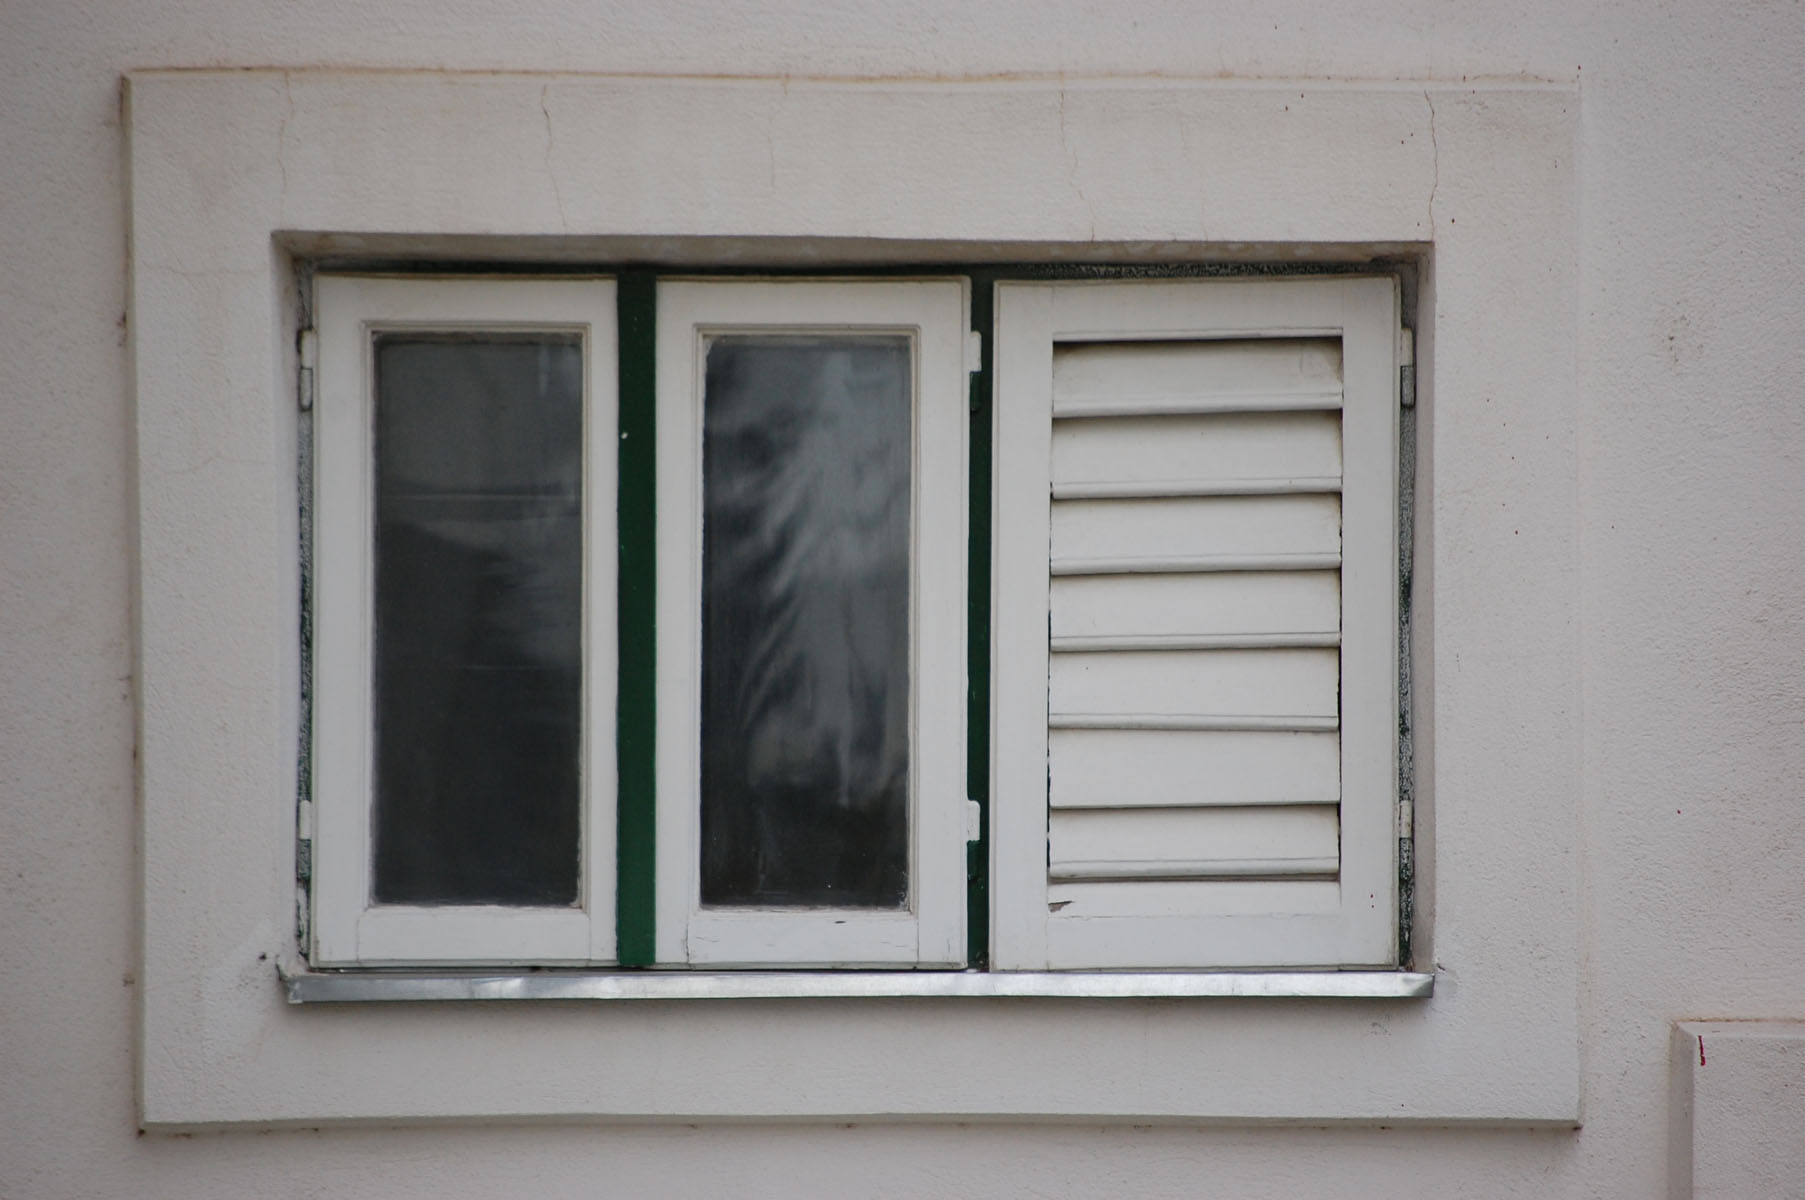 Cost of new windows for house daily prompt ladyleemanila for New home windows